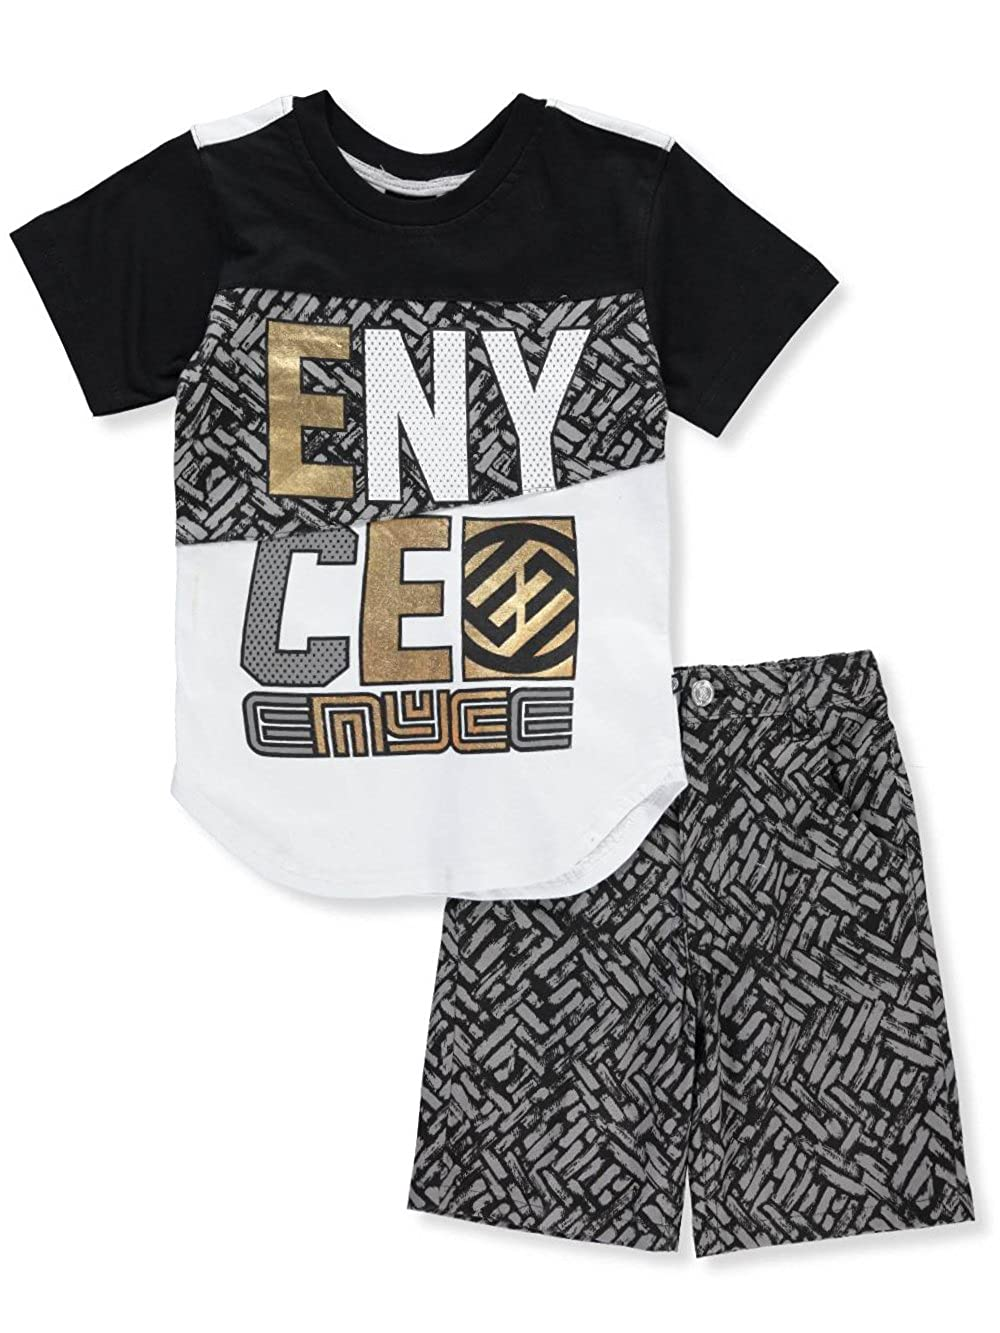 Enyce Boys' 2-Piece Short Set Outfit 7